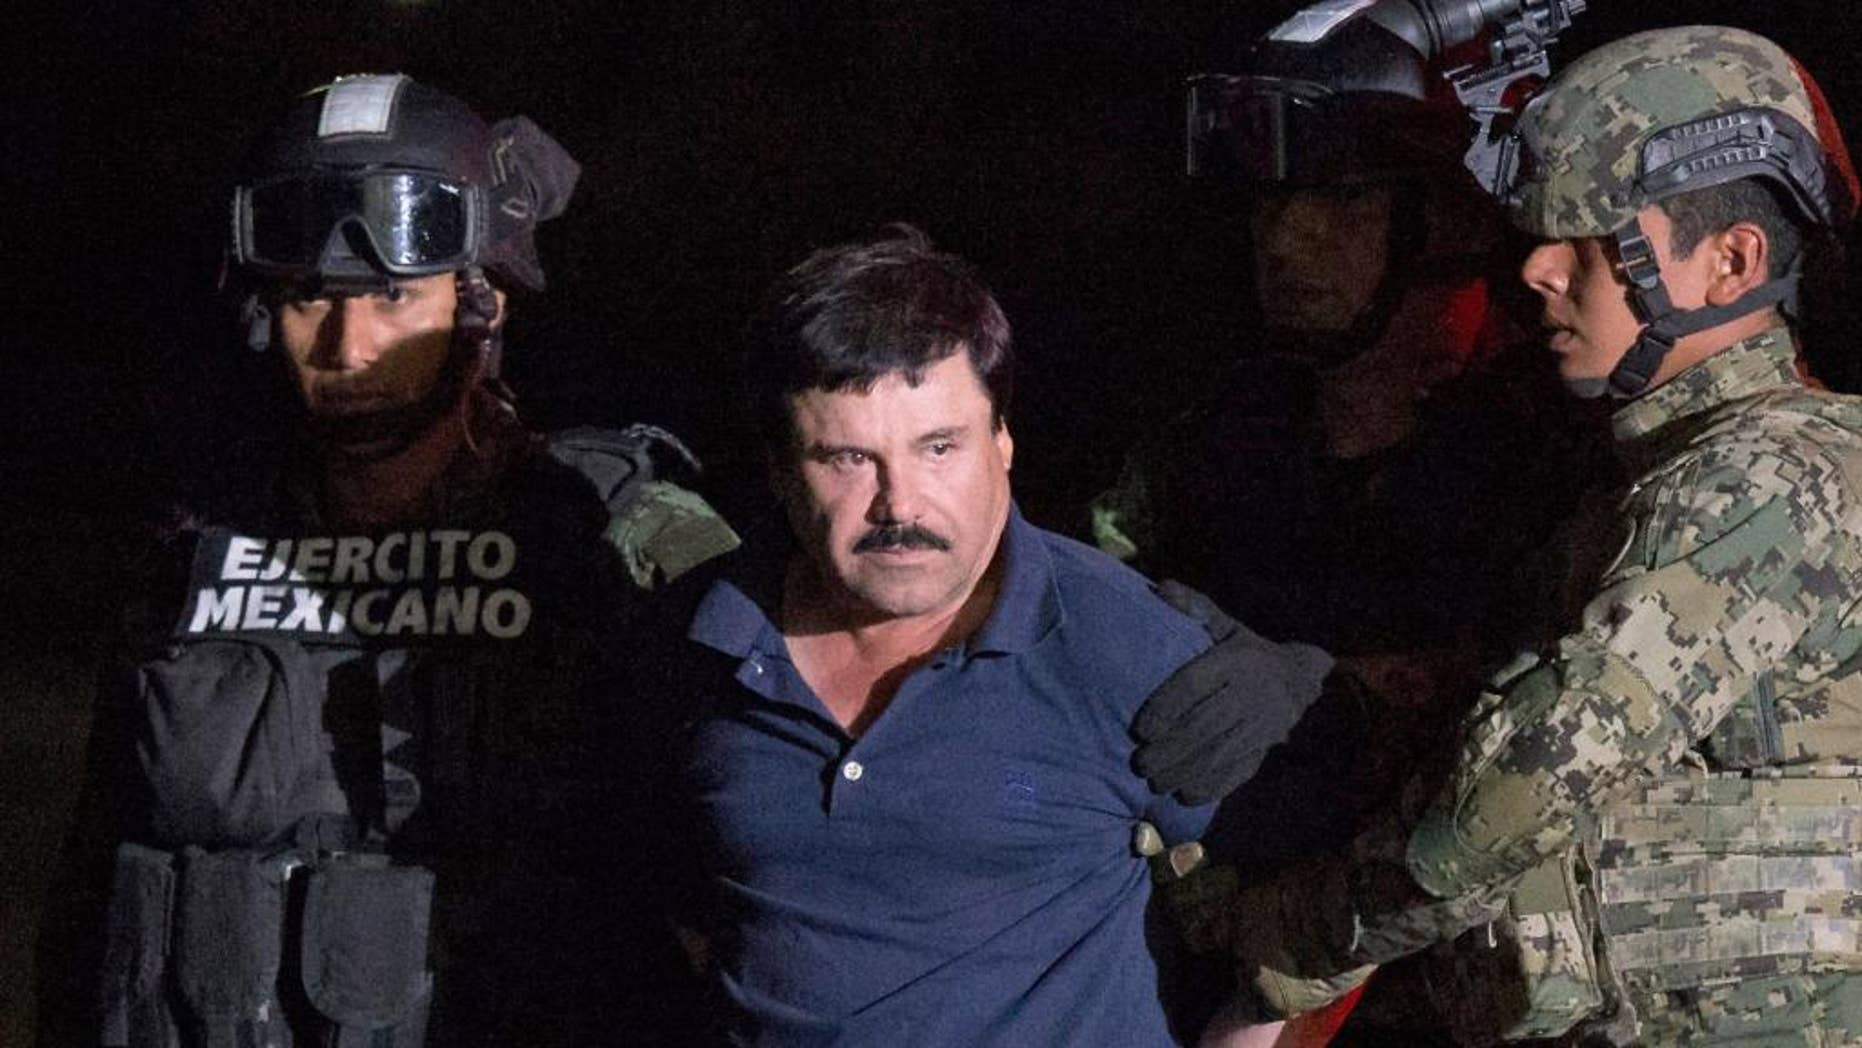 """FILE - In this Jan. 8, 2016 file photo, Mexican drug lord Joaquin """"El Chapo"""" Guzman is escorted by soldiers to a waiting helicopter at a federal hangar in Mexico City, after he was recaptured from breaking out of a maximum security prison in Mexico. A Mexican judge said on Monday, May 9, 2016 that Guzman's extradition to the U.S. can move ahead, but the country's foreign ministry must still approve it and the defense can appeal. (AP Photo/Rebecca Blackwell, File)"""